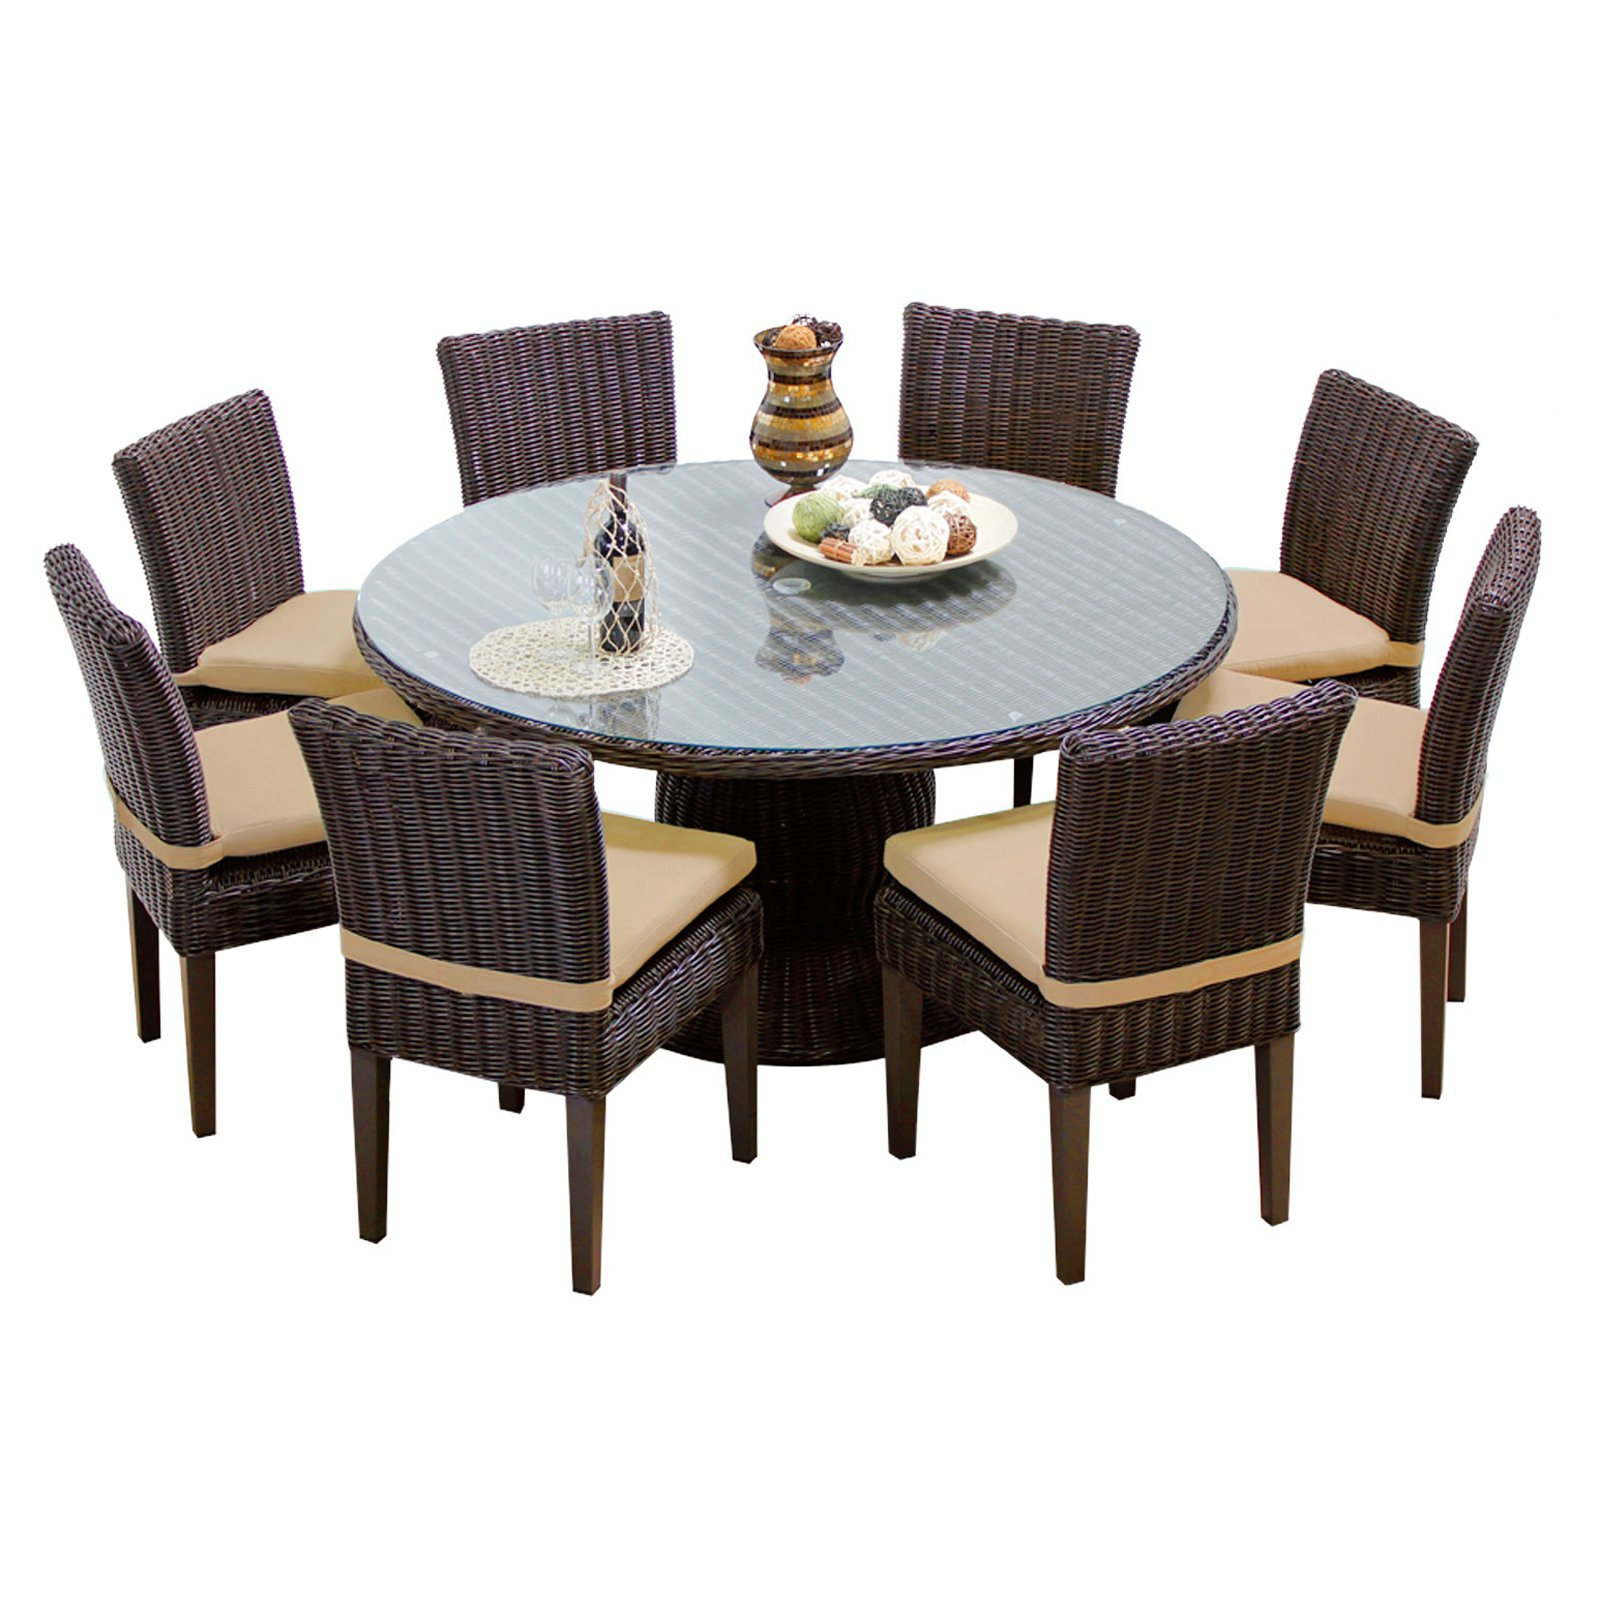 TK Classics Venice Wicker 9 Piece Patio Dining Room Set with 16 Cushion Covers by TK Classics